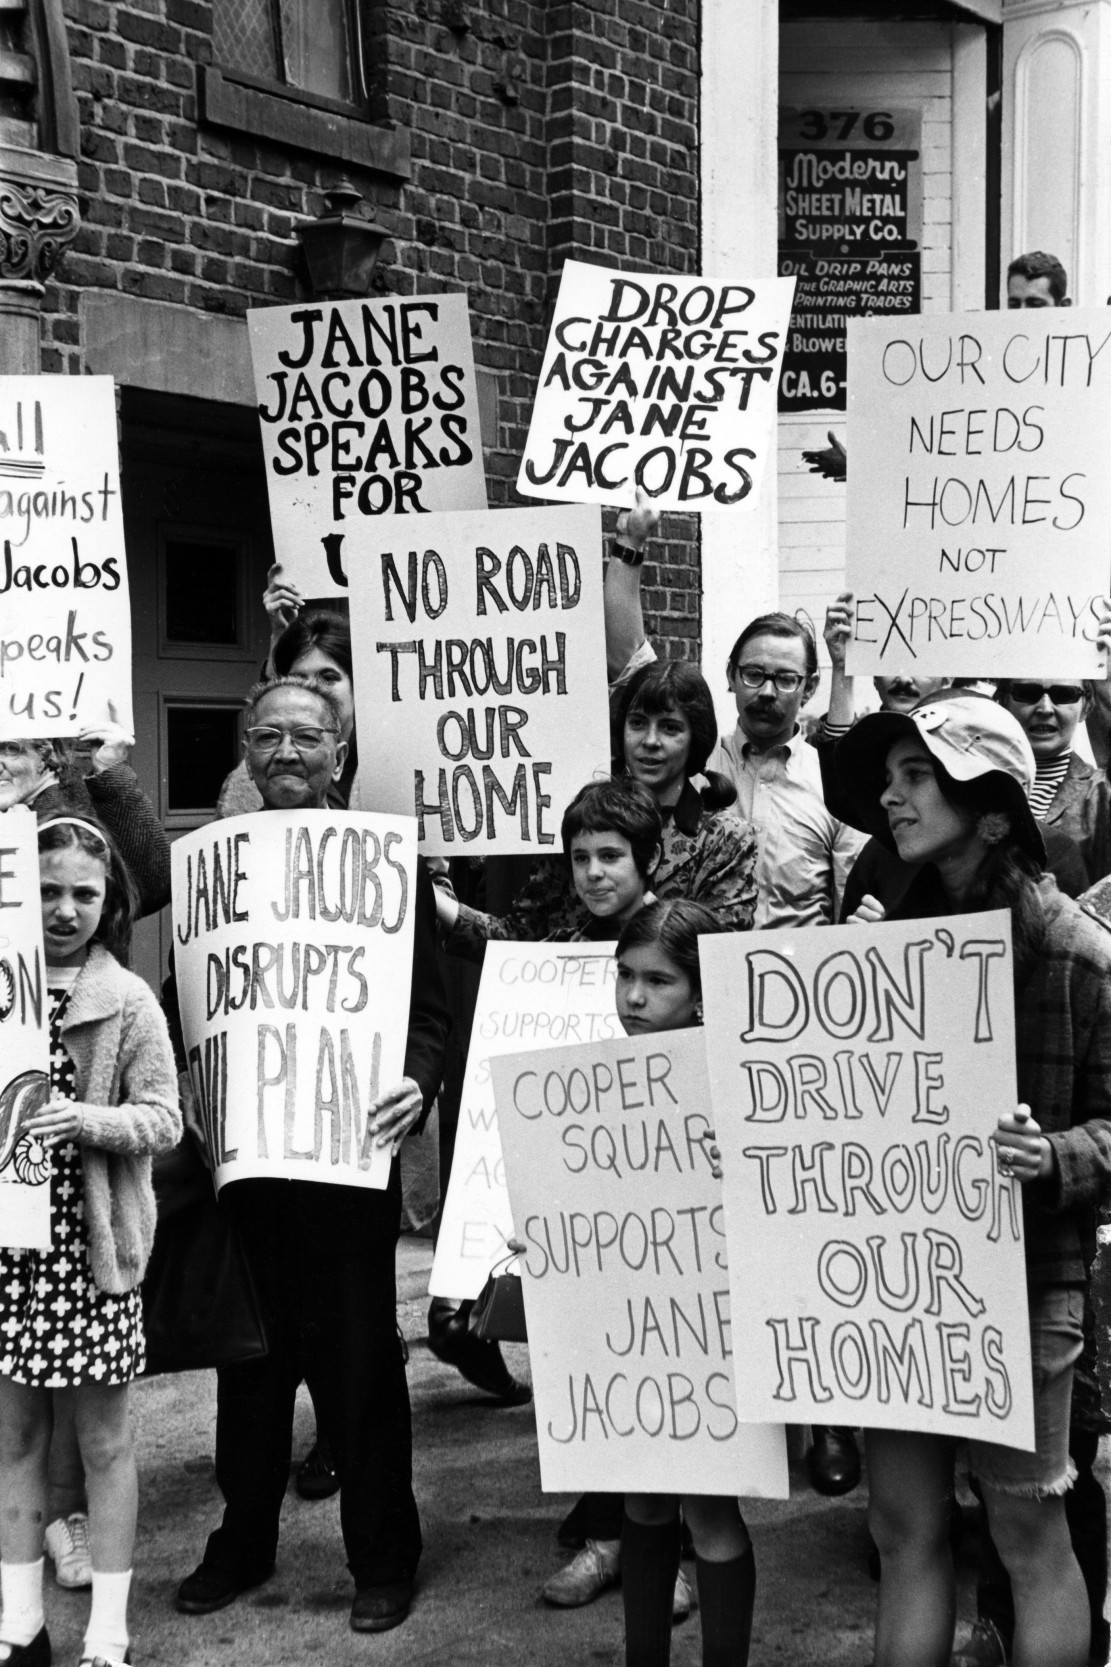 Demonstrators protest charges against activist & author Jane Jacobs (not pictured), New York, New York, May 8, 1968. The then 51-year-old Jacobs had been arrested and charged with inciting riot at a protest of the propsed Lower Manhattan Expressway.